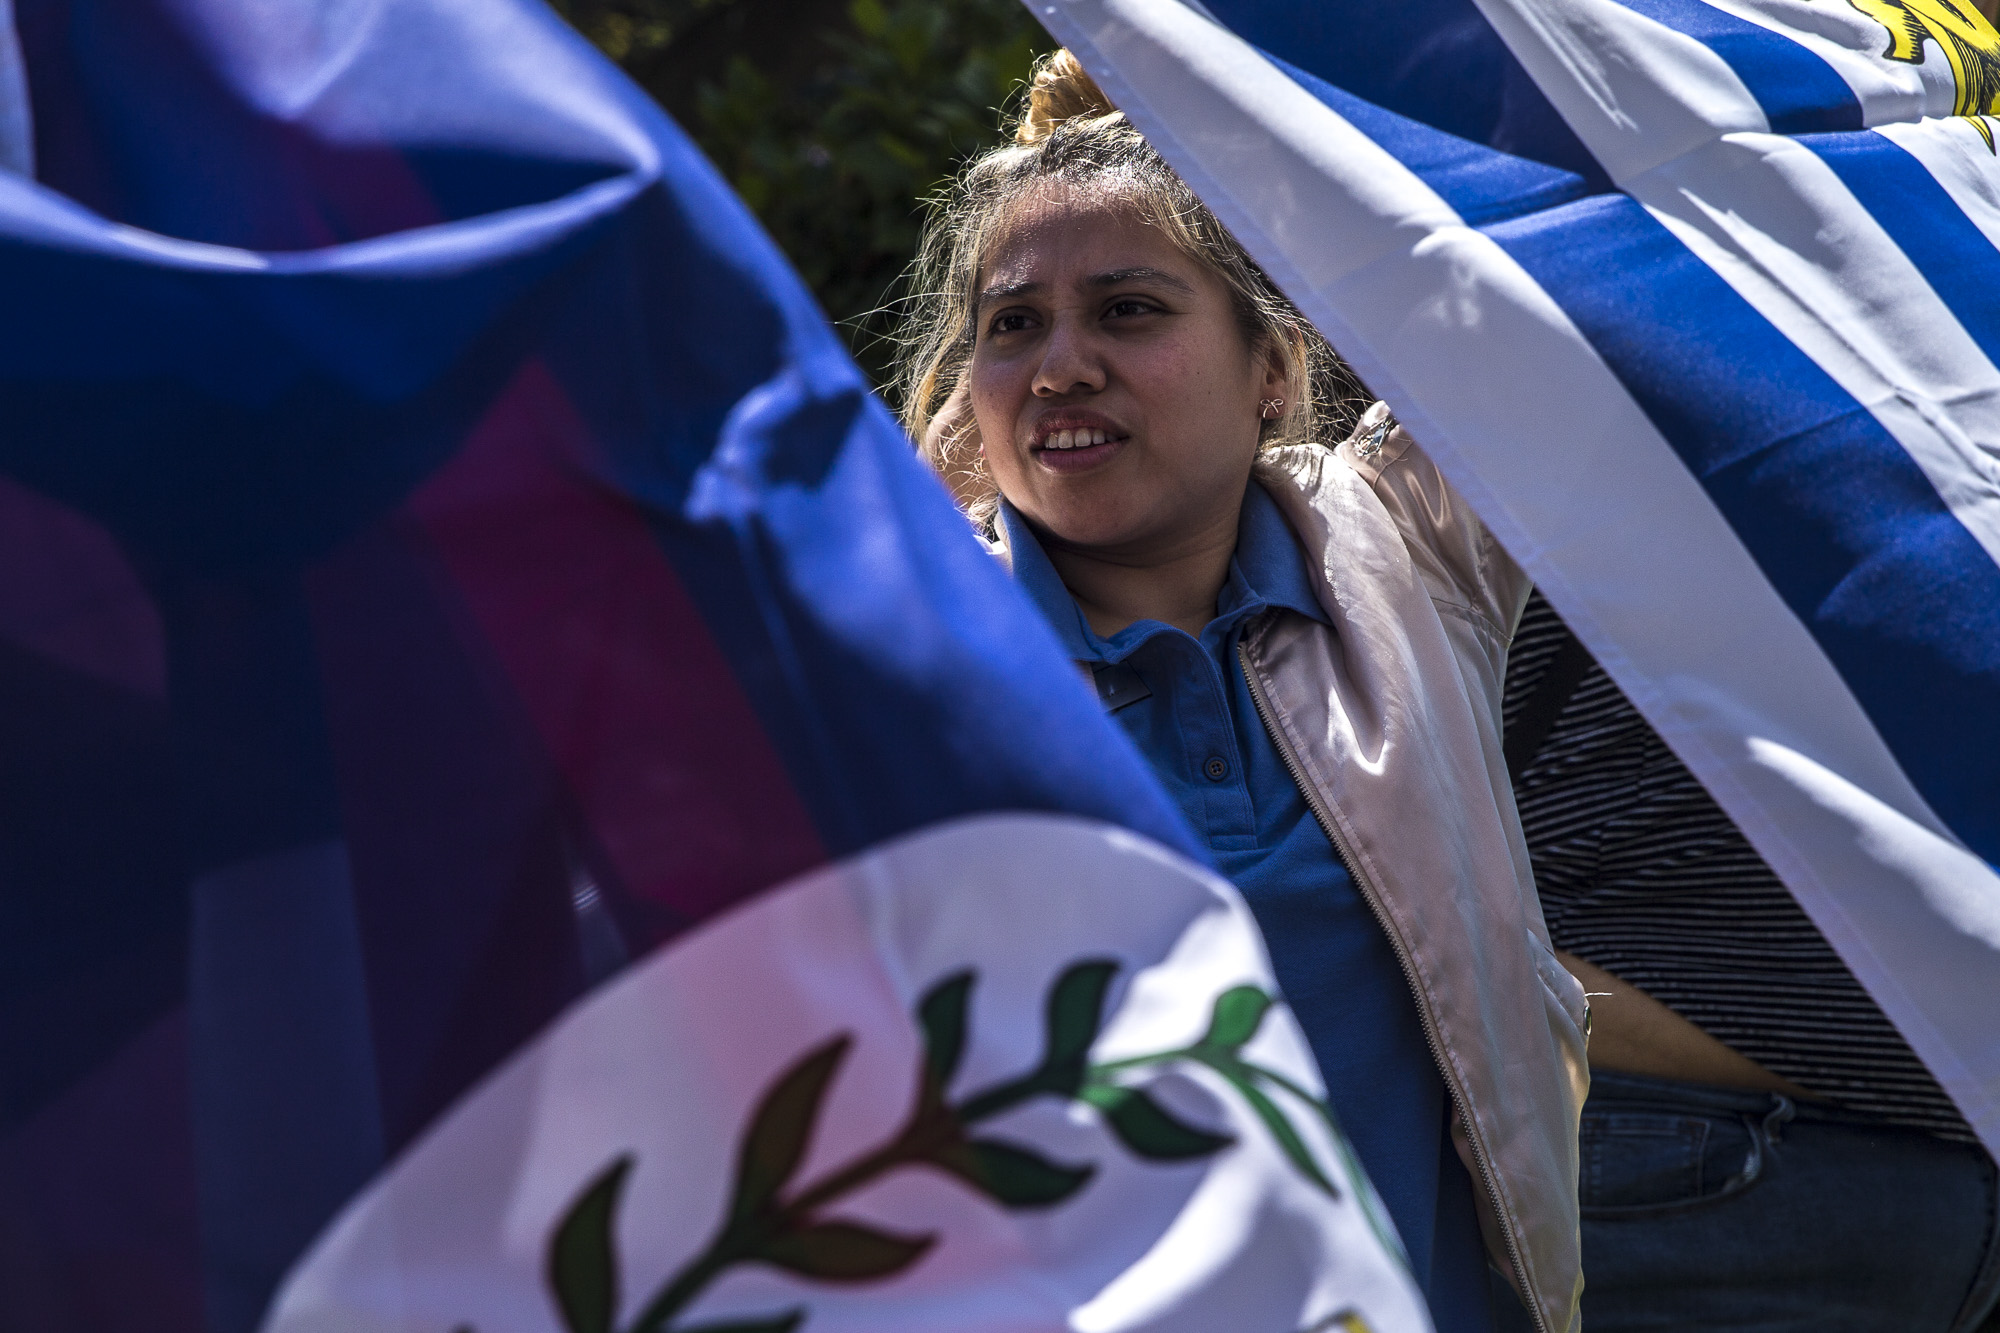 """Santa Monica College students and """"Adelante"""" club members help set up flags and decorations for the Cinco de Mayo Celebratory event that took place in front of the clock tower on the SMC main campus on Thursday, May 3 2018.  This event was put together by the Santa Monica College club """"Adelante,"""" whose goal at the event was to inform students about the origins of Cinco De Mayo and put to rest the stereotypes that come with the holiday, specifically the misperception that it is a day of independence for Mexico and also that is just a drinking holiday in the United States. (Matthew Martin/Corsair Photo)"""